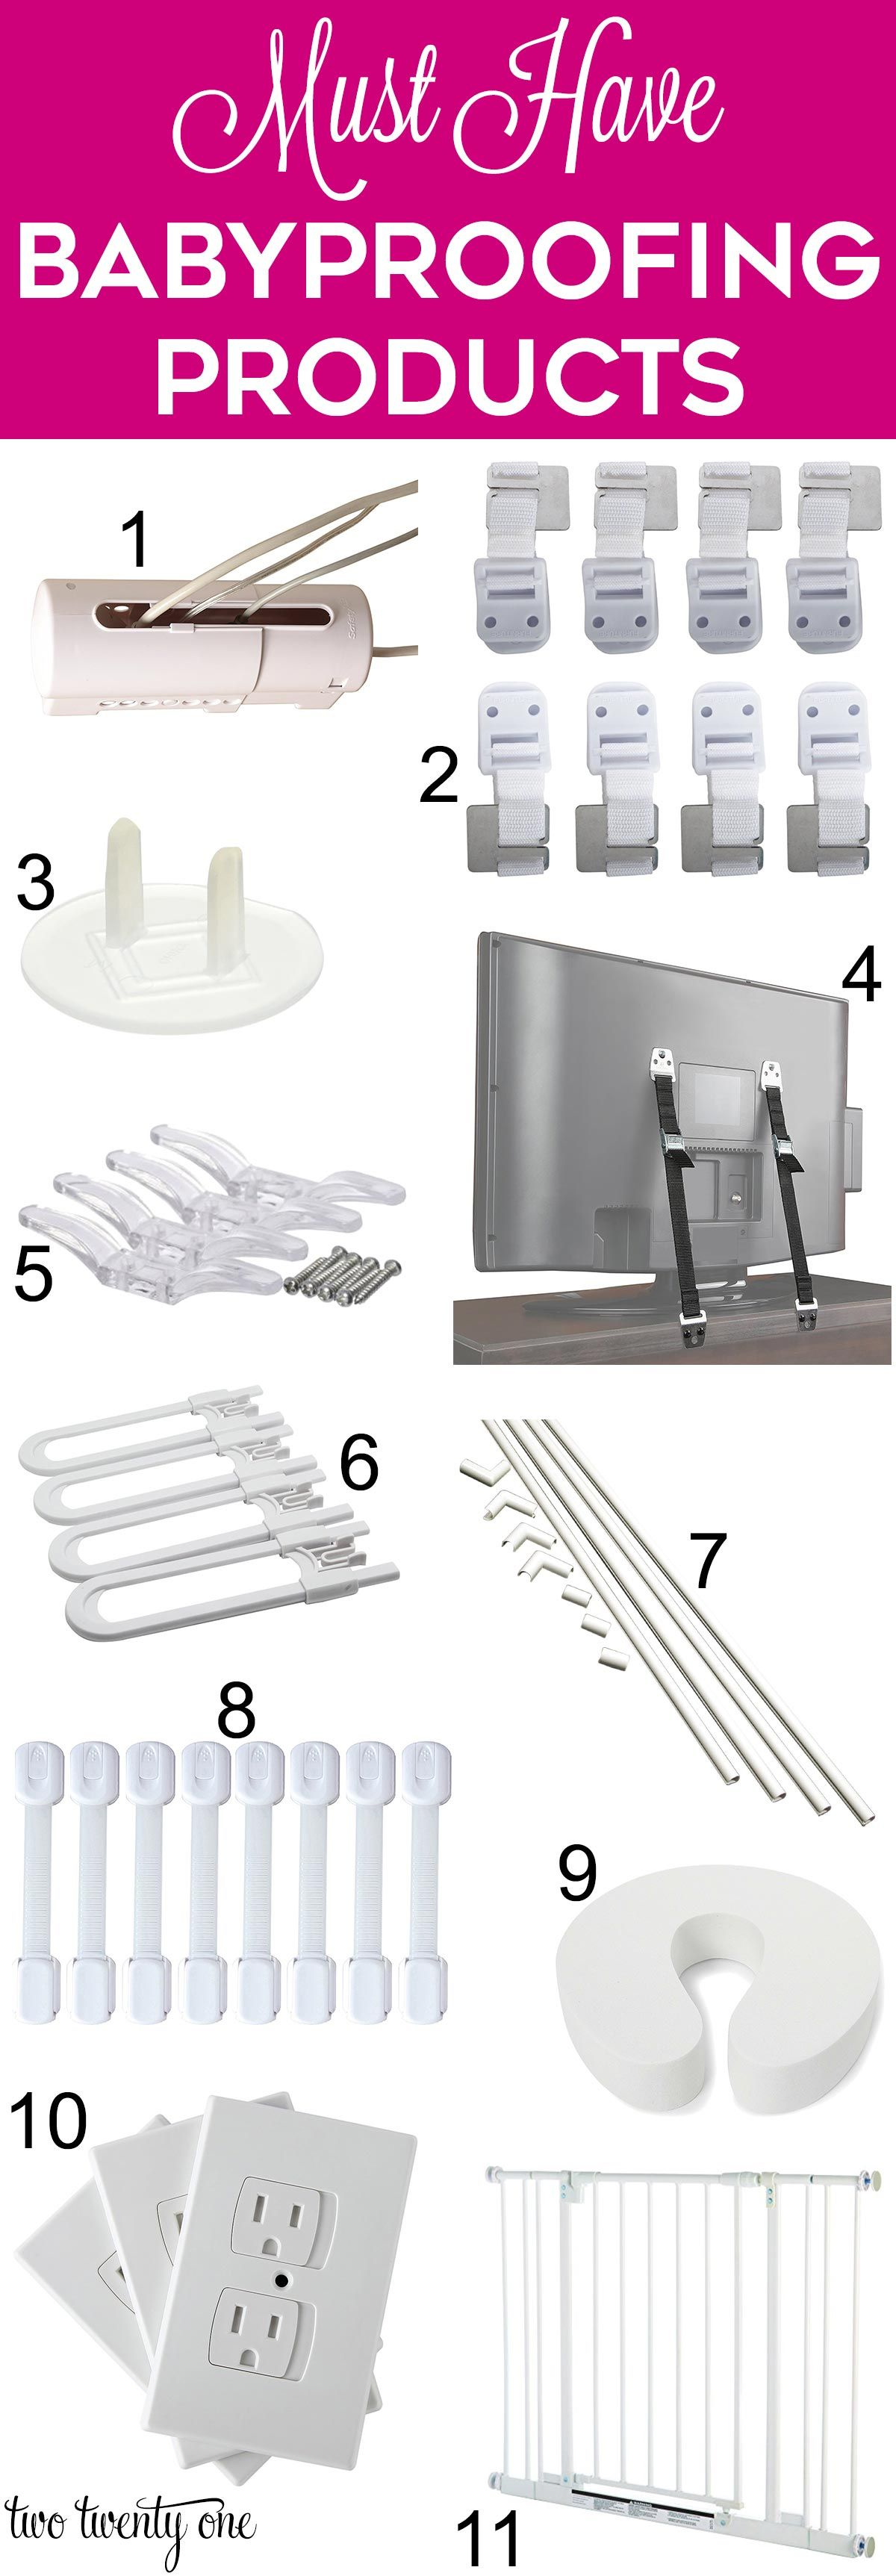 Baby Proofing Products